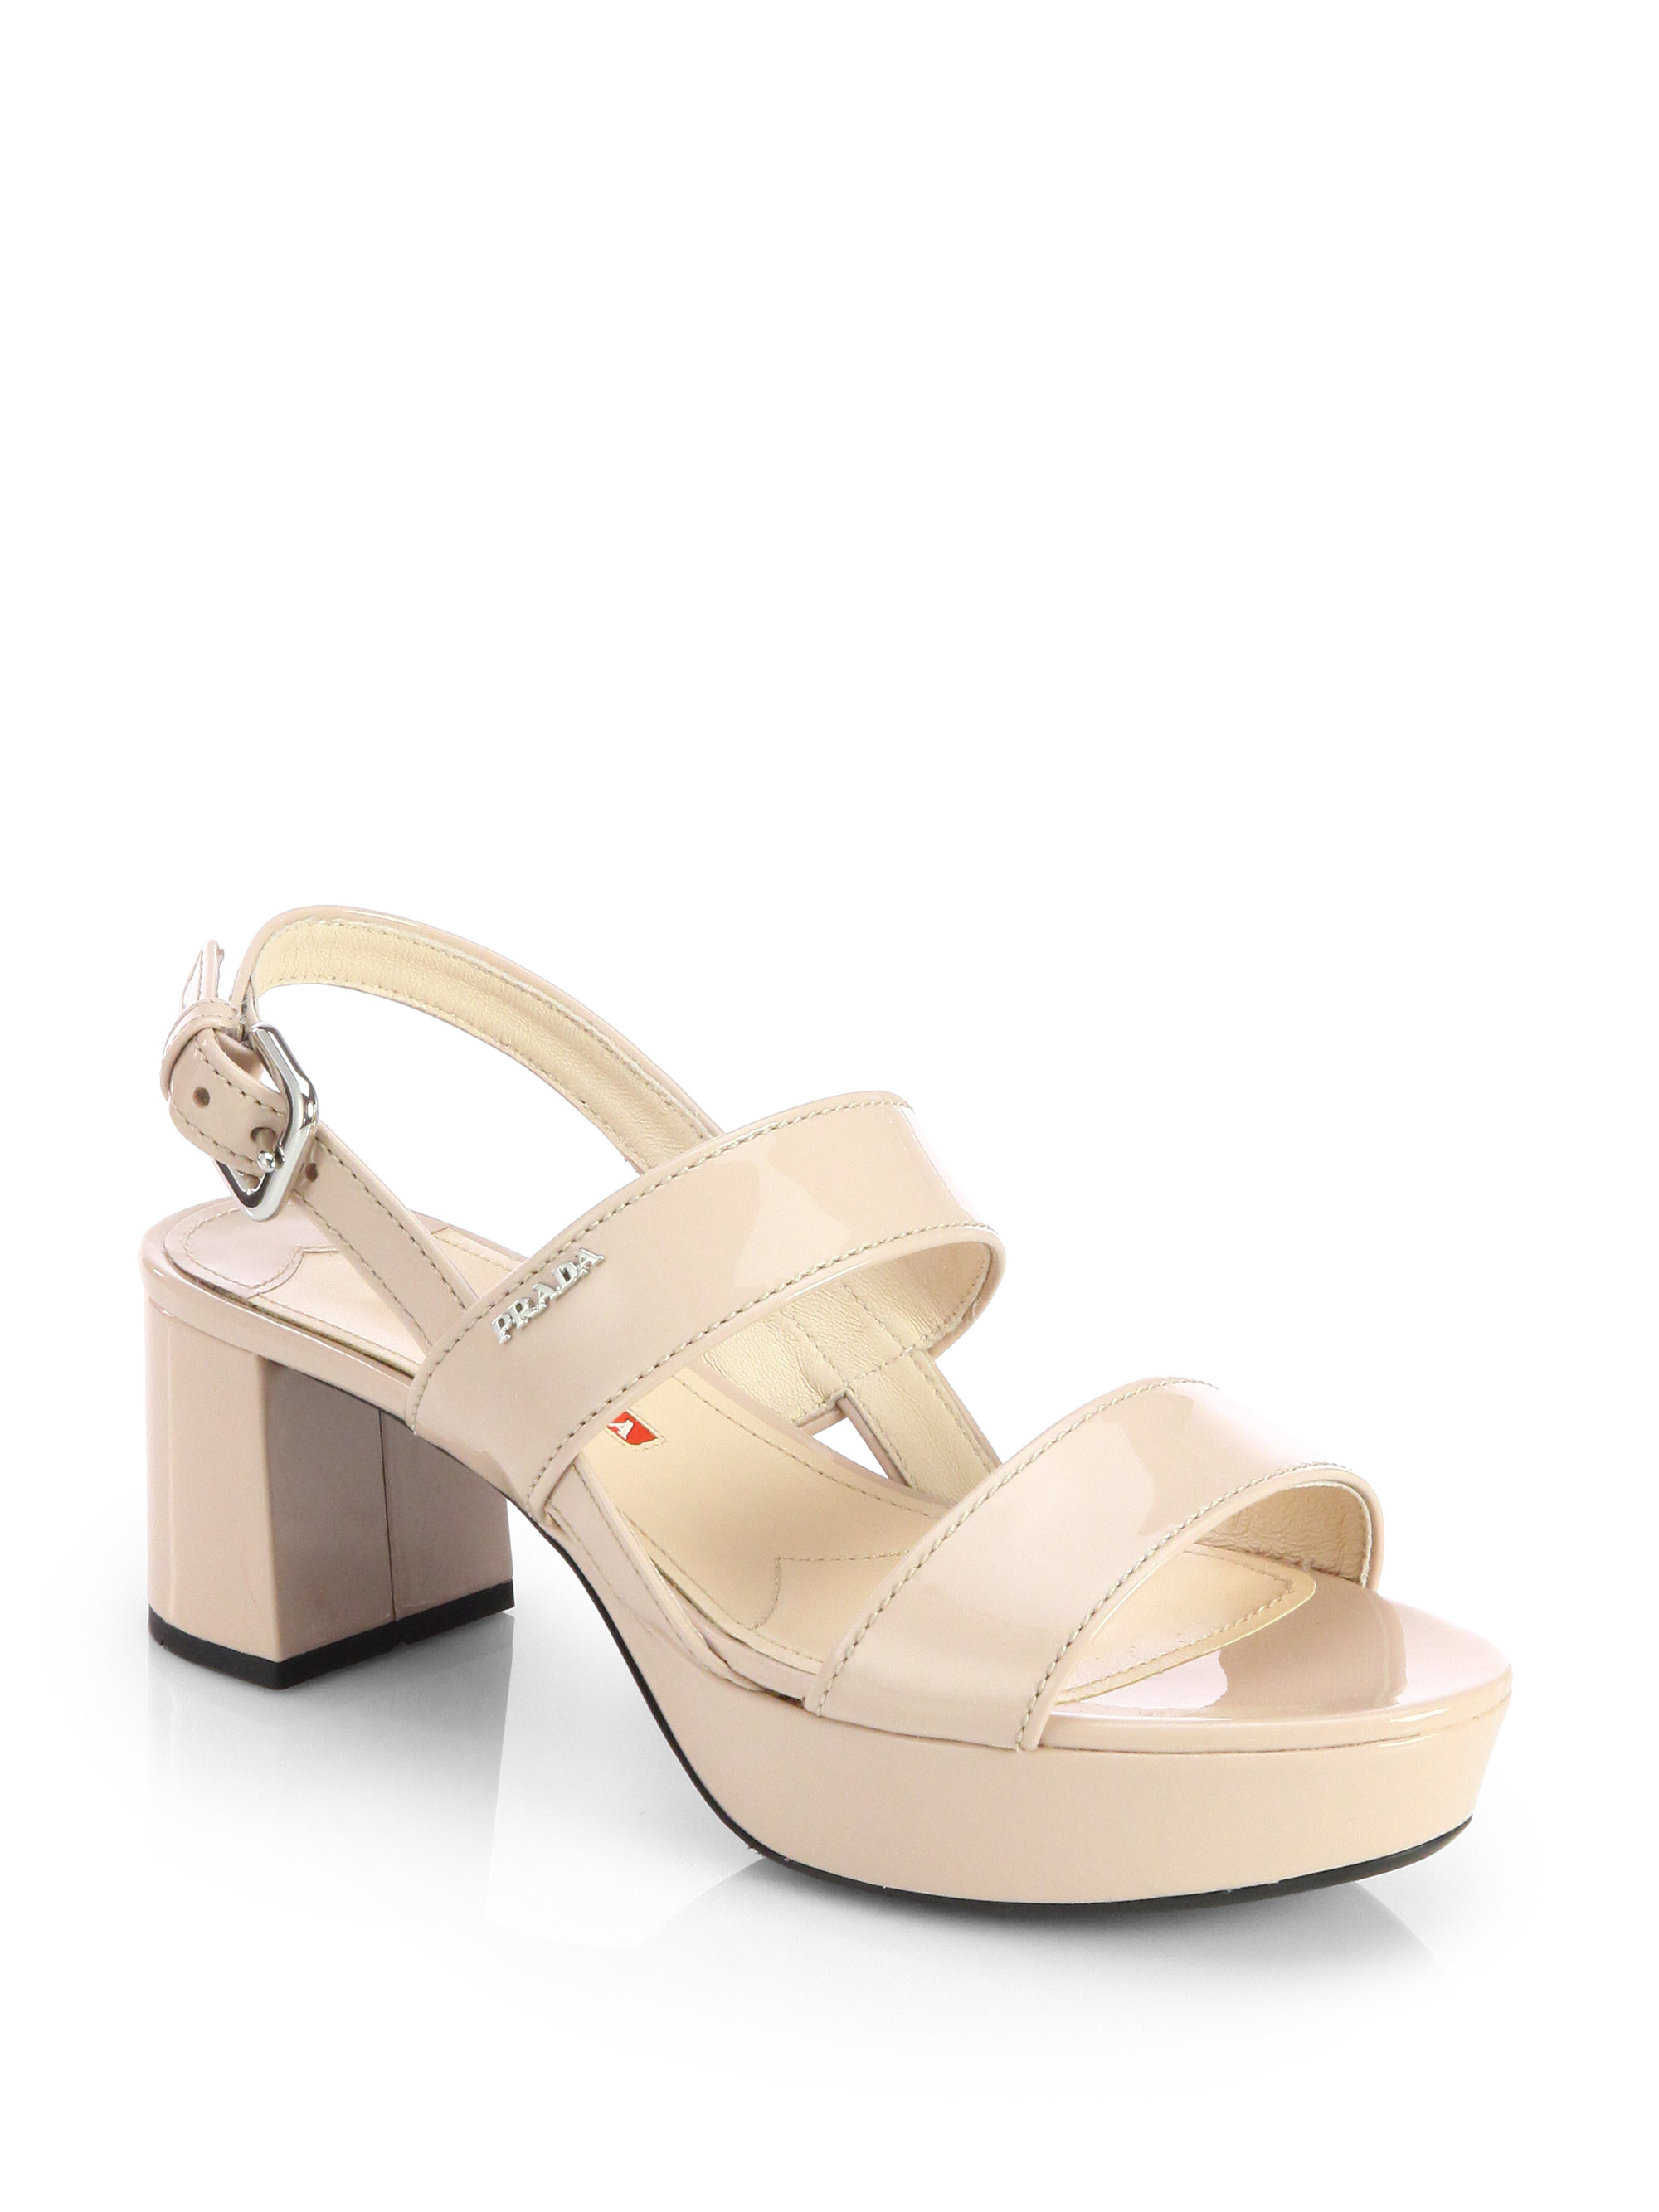 7ecf14ffa48 Lyst - Prada Patent Leather Block-Heel Sandals in Natural